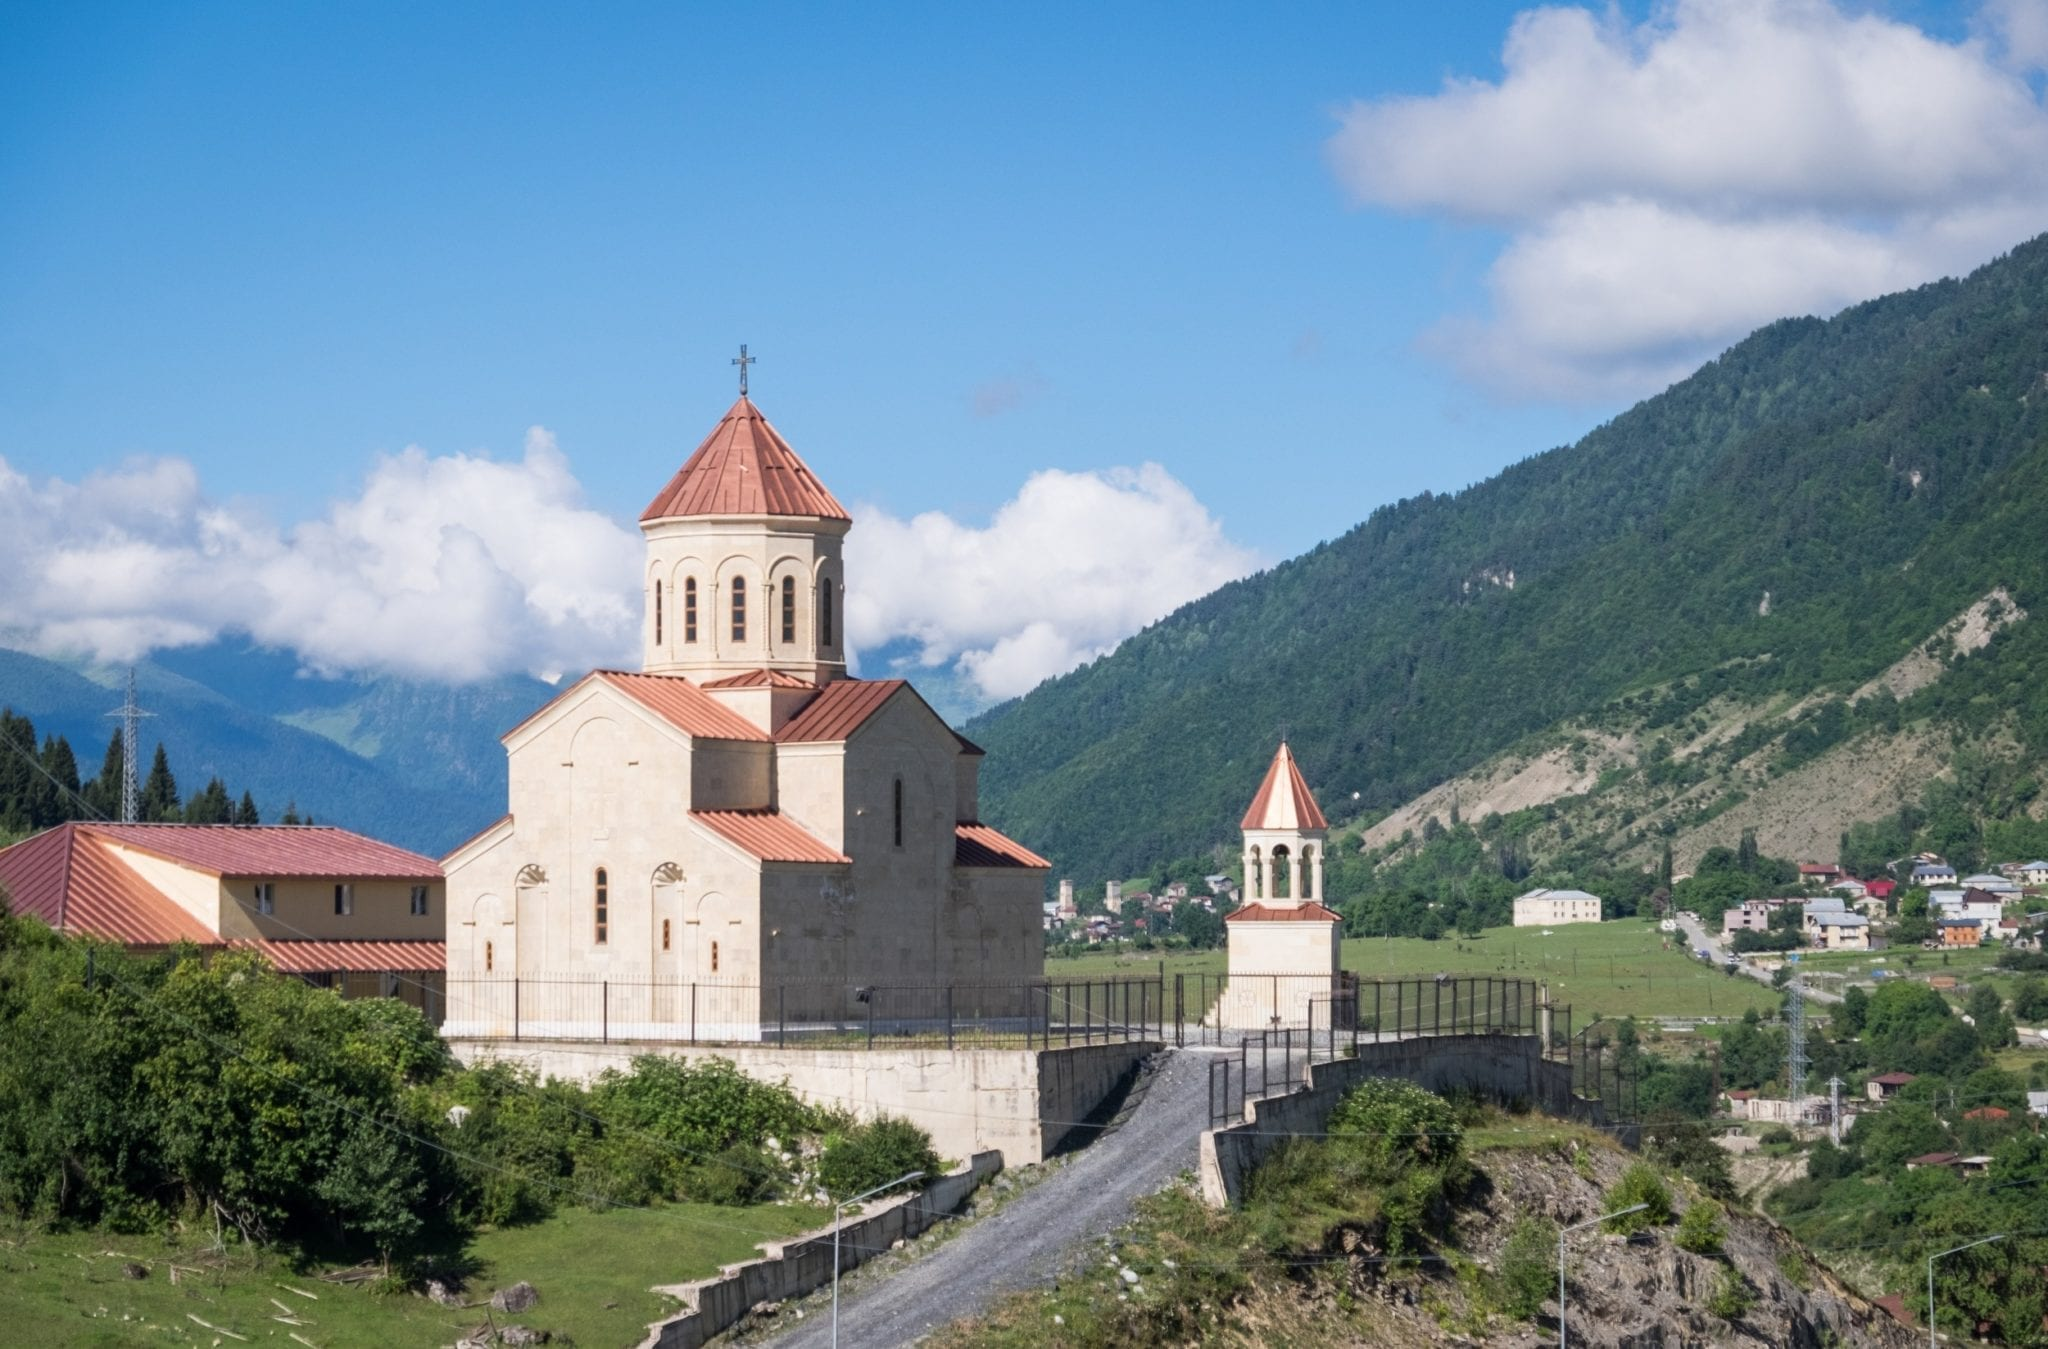 An orange-roofed church looking over the mountain landscape in Mestia, Svaneti.